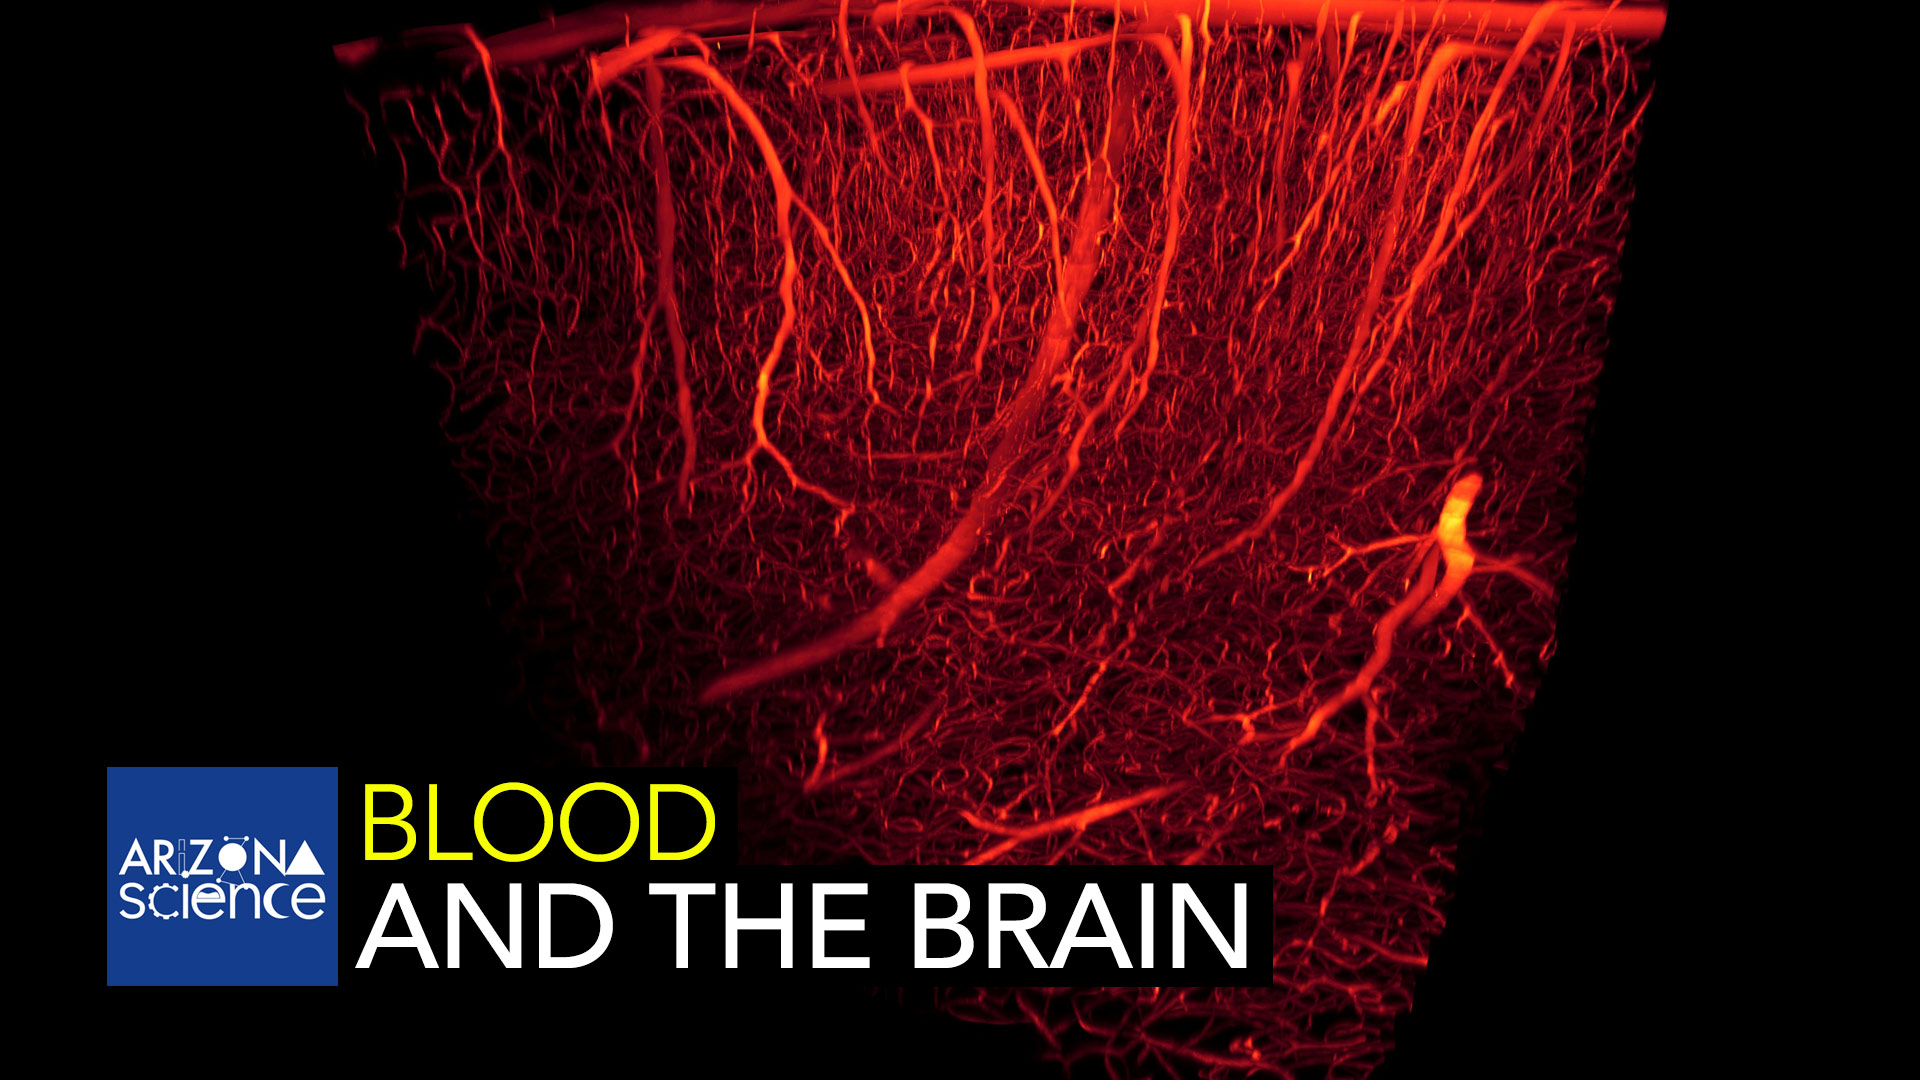 A University of Arizona professor is researching the relationship between neural activity and blood oxygen level.